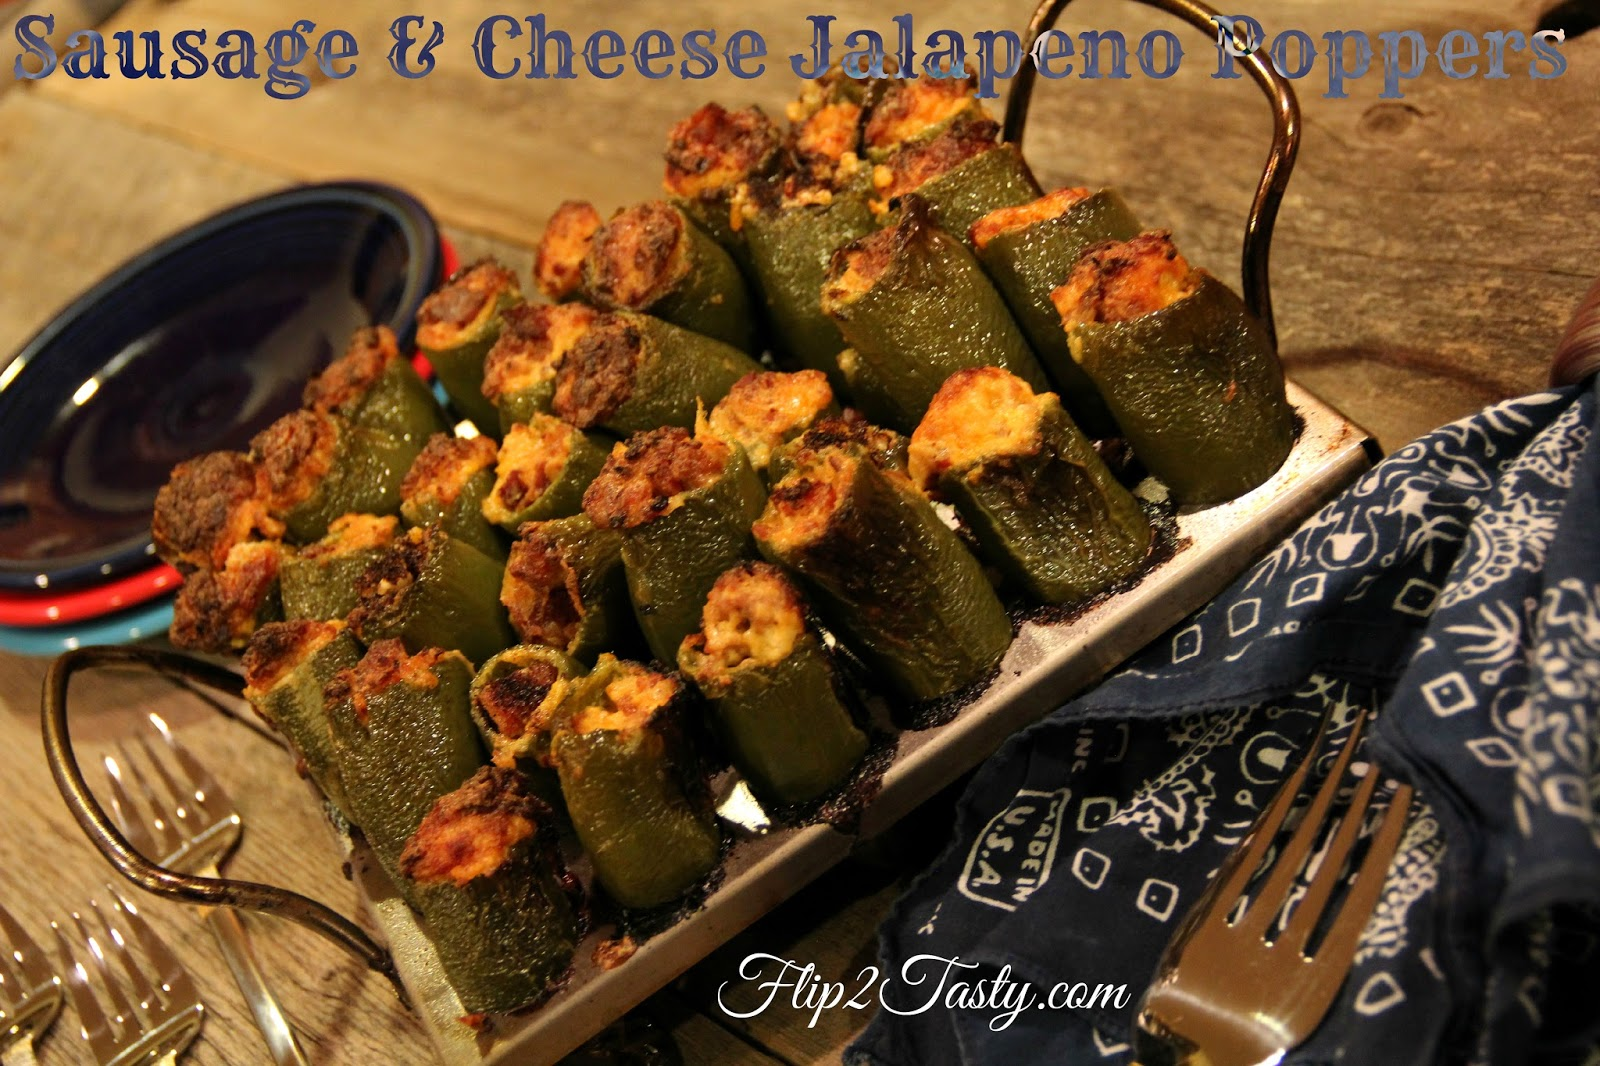 Sausage & Cheese Jalapeno Poppers